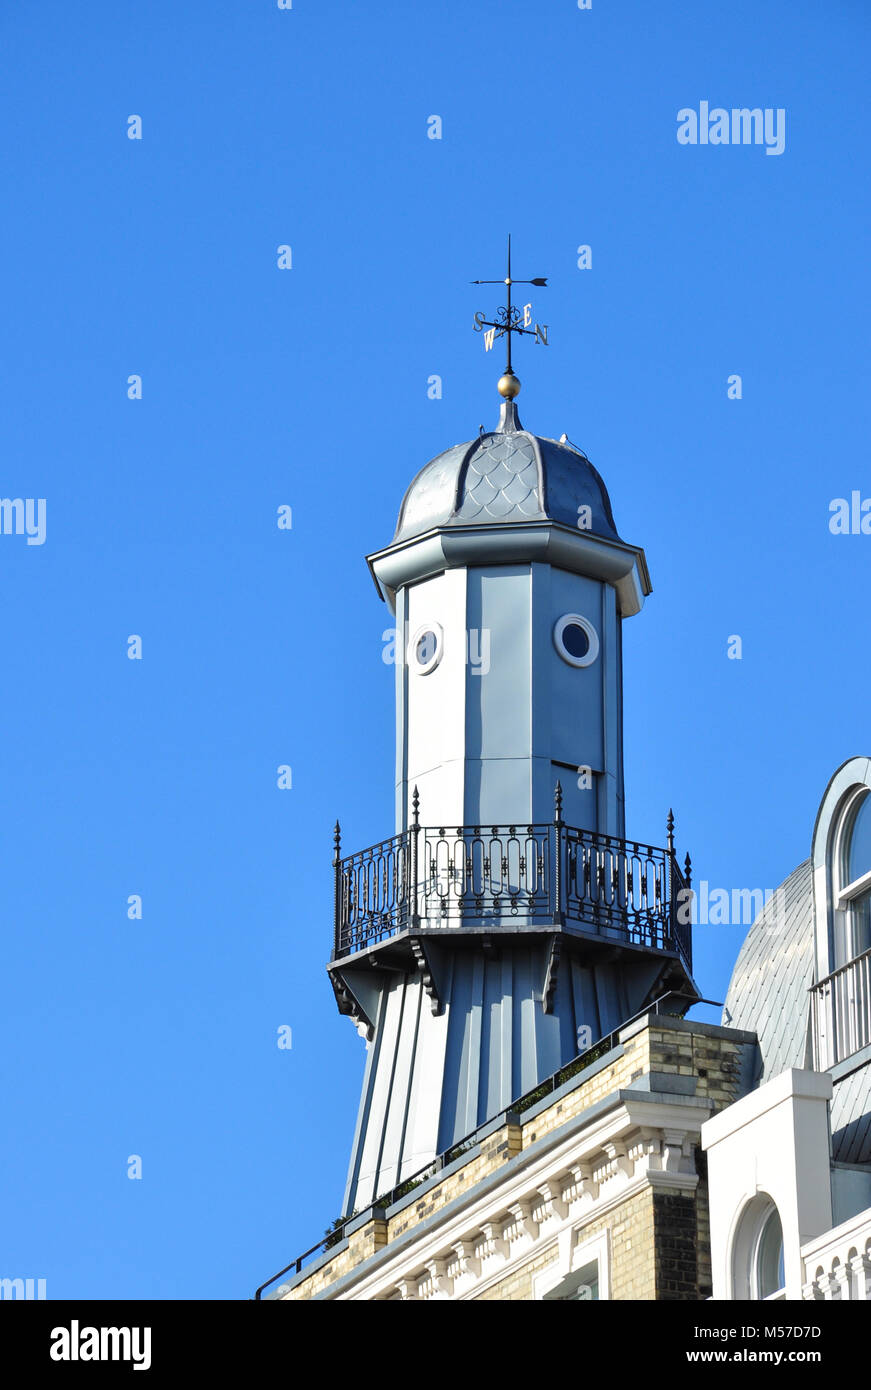 The 'Lighthouse' from Gray's Inn Road, London, England, UK - Stock Image